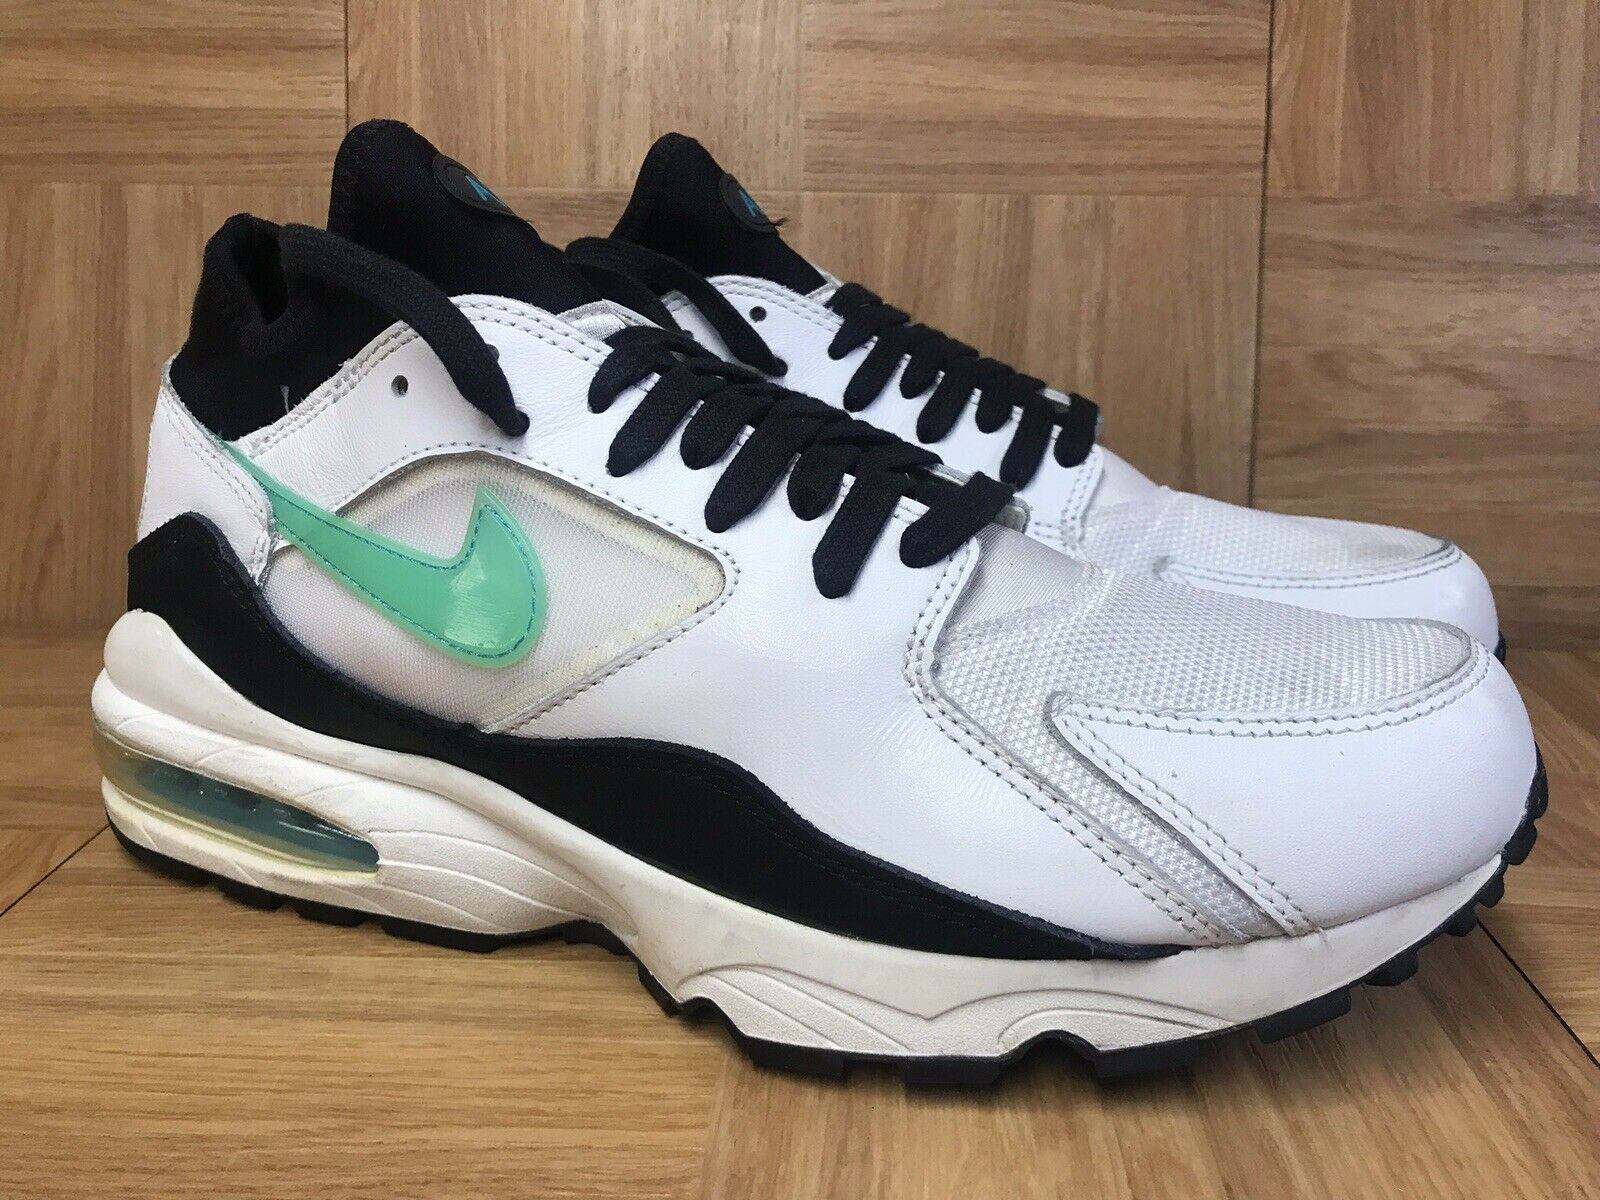 RARE Nike Air Max '93 Dusty Cactus Black Menthol 10.5 306551-103 Men's shoes